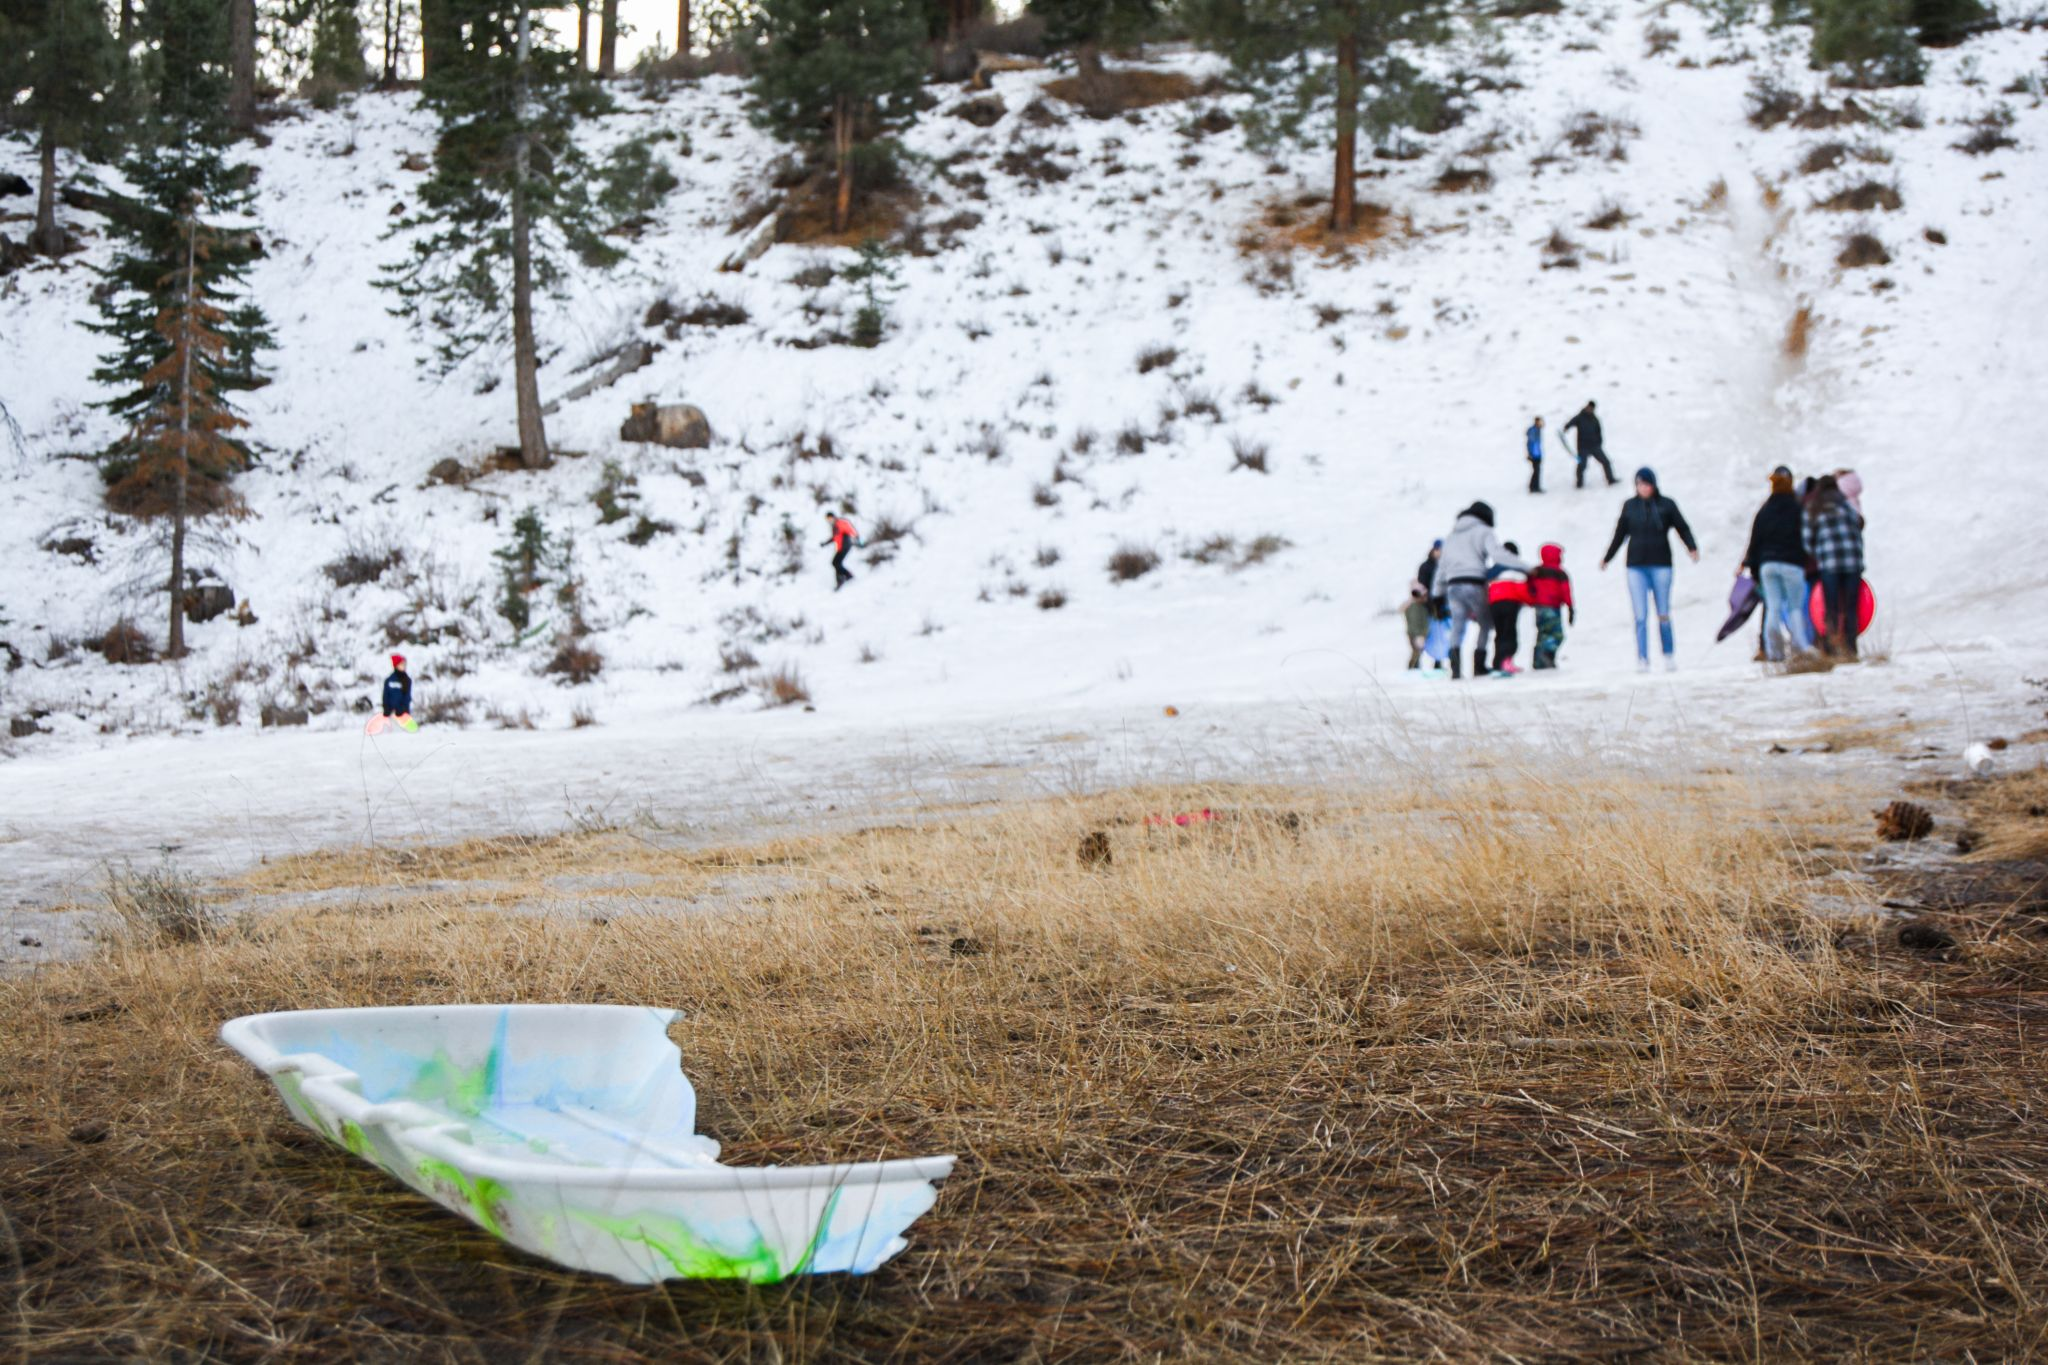 Volunteers collect 5,684 gallons of trash from Tahoe's sled hills